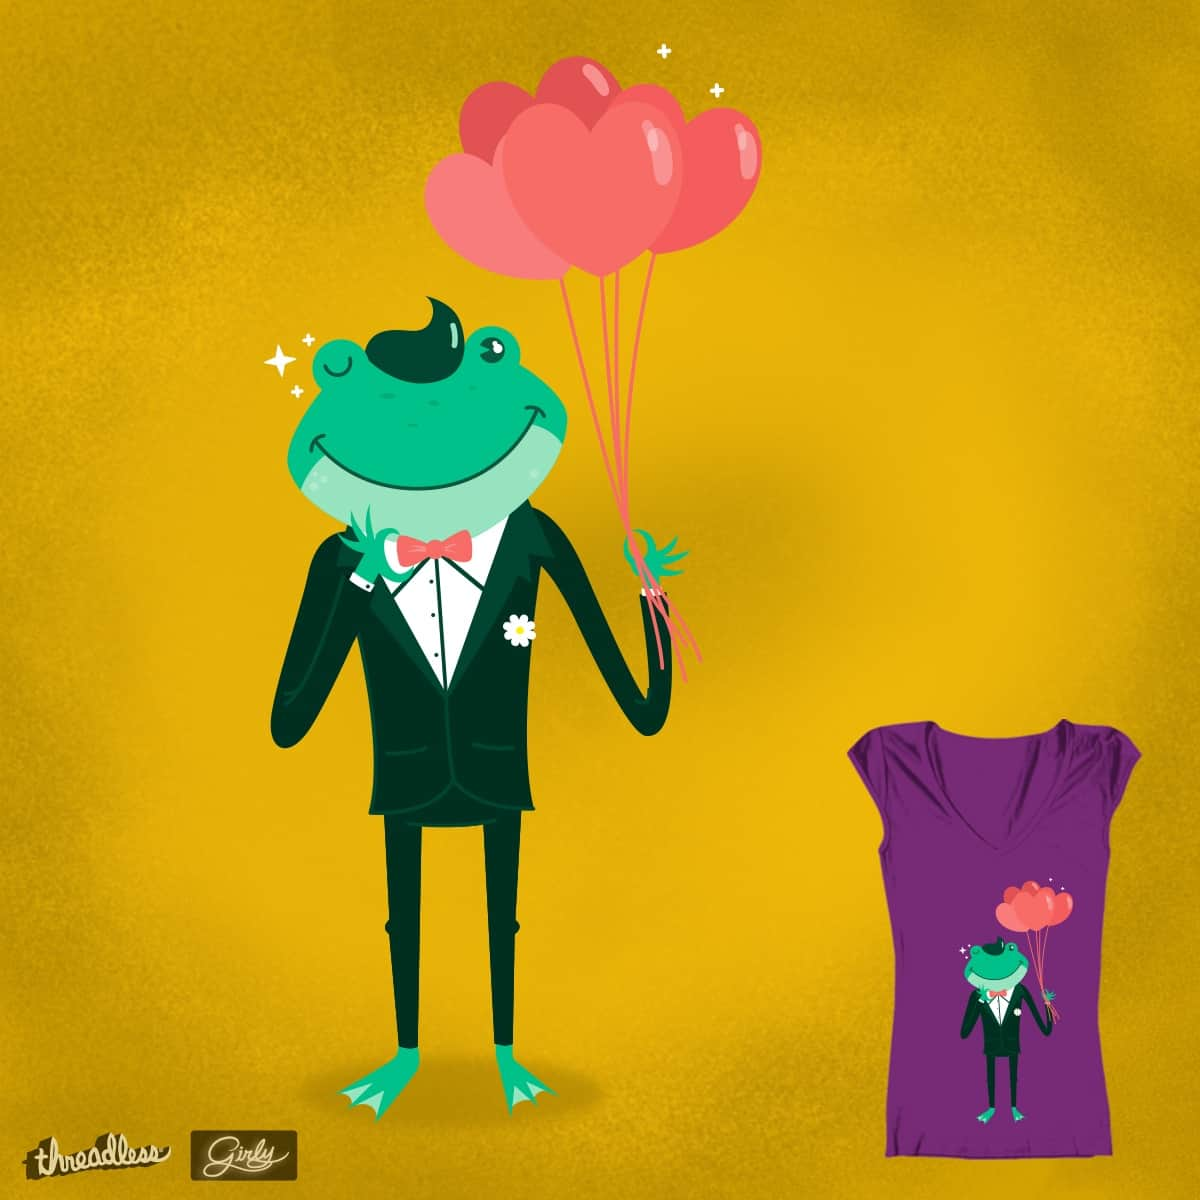 Love Frog by carrysb on Threadless